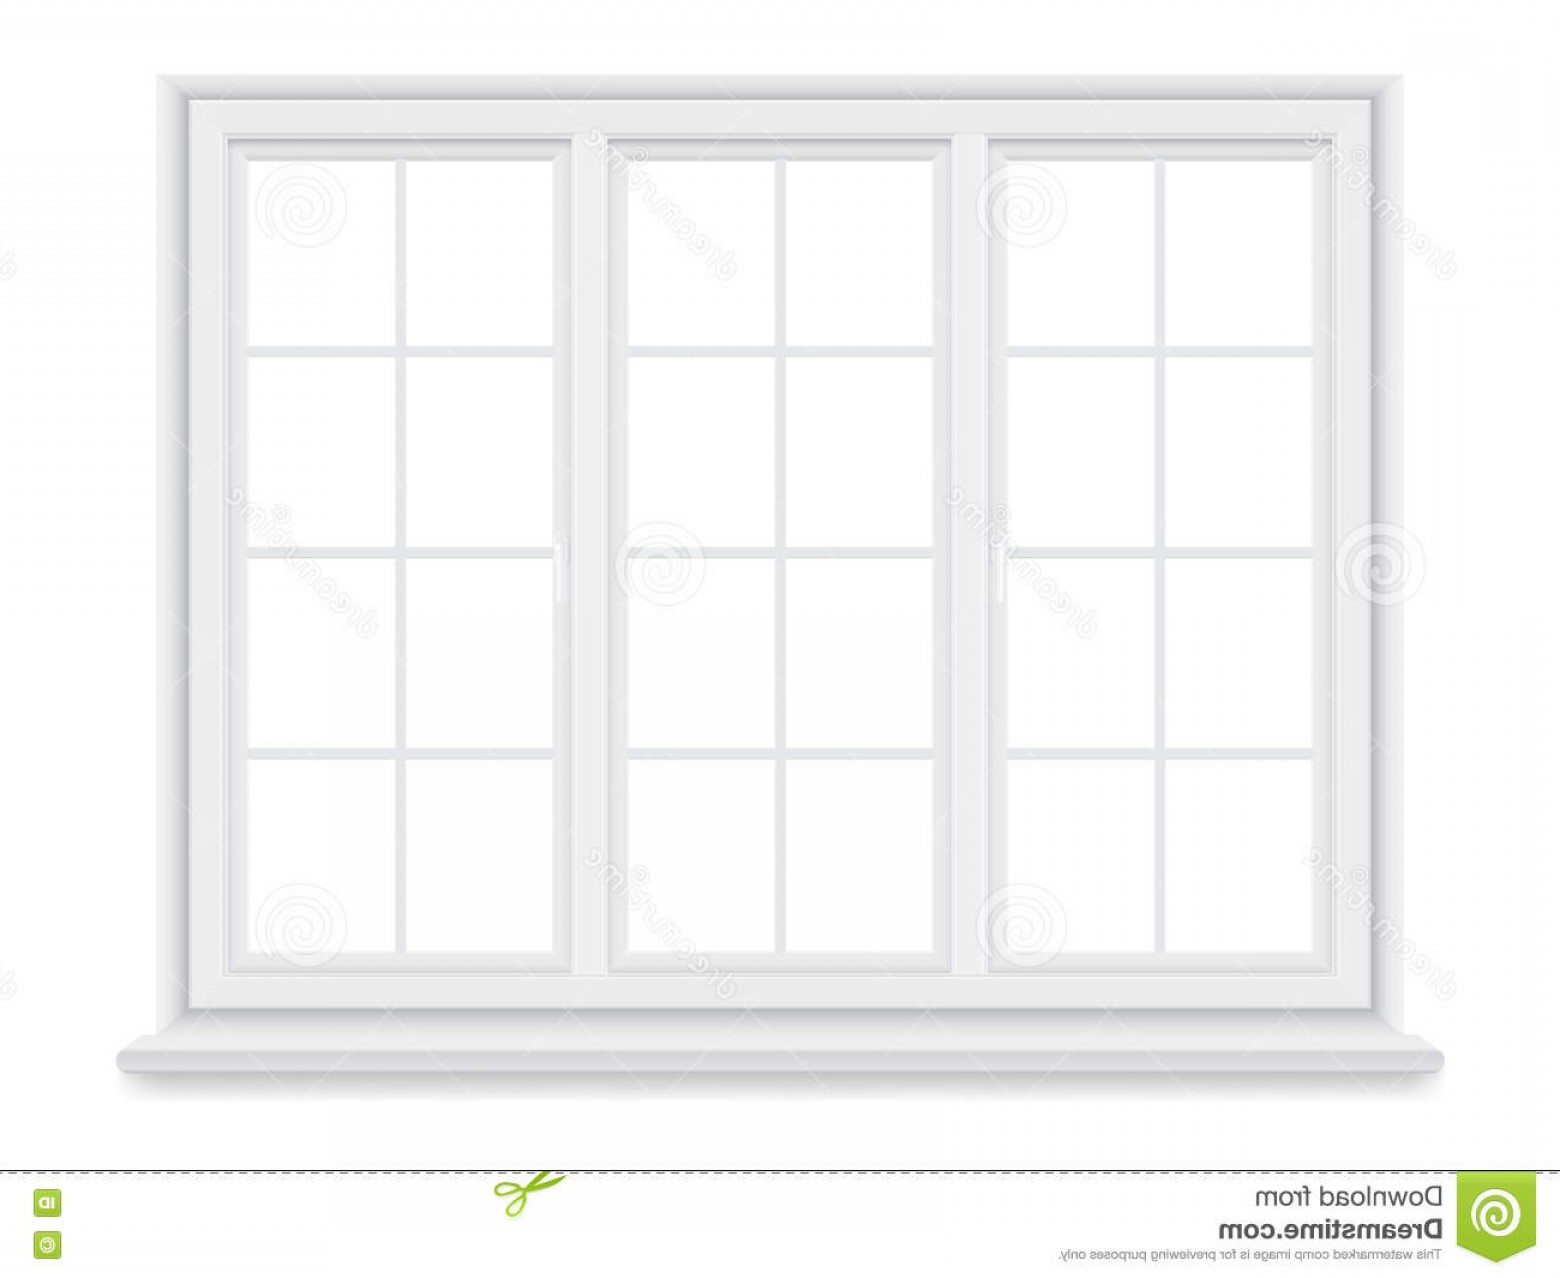 Clay Window Vector: Stock Illustration Traditional Big White Window Isolated Background Closed Realistic Vector Element Architecture Interior Design Image